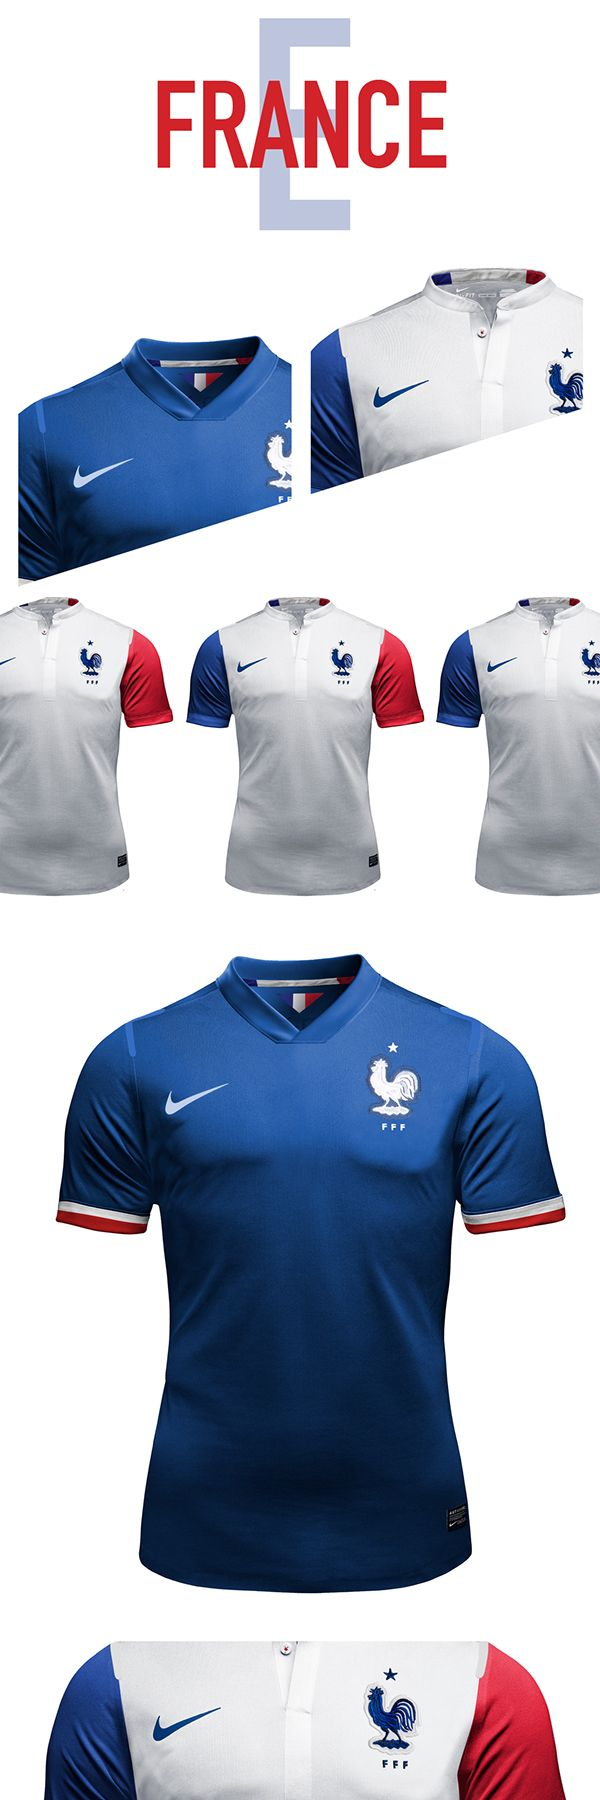 France. World Cup. Group F. Concepts on Behance